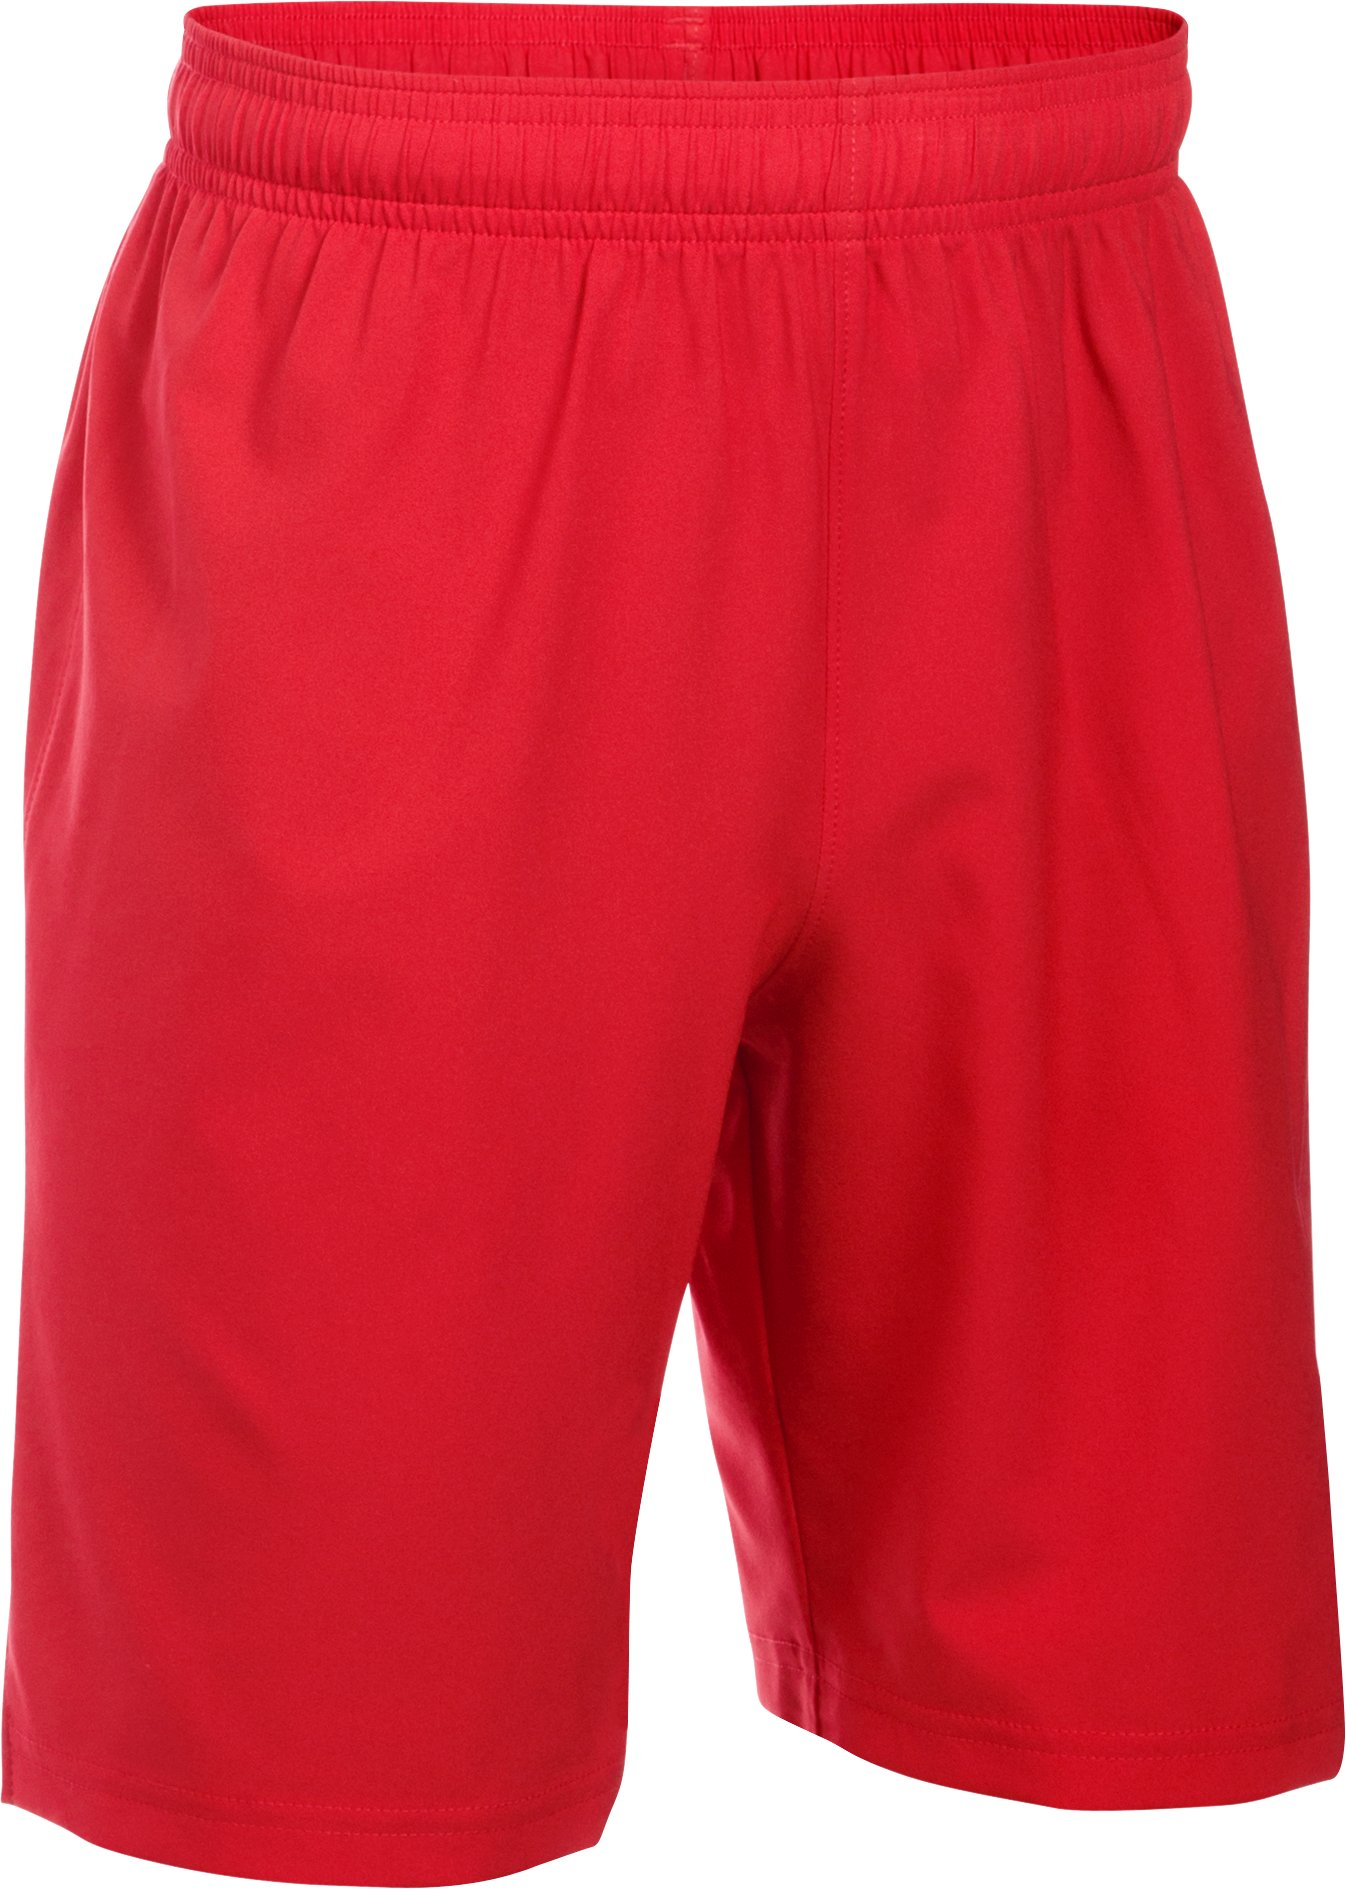 Boys' UA Hustle Shorts, Red,